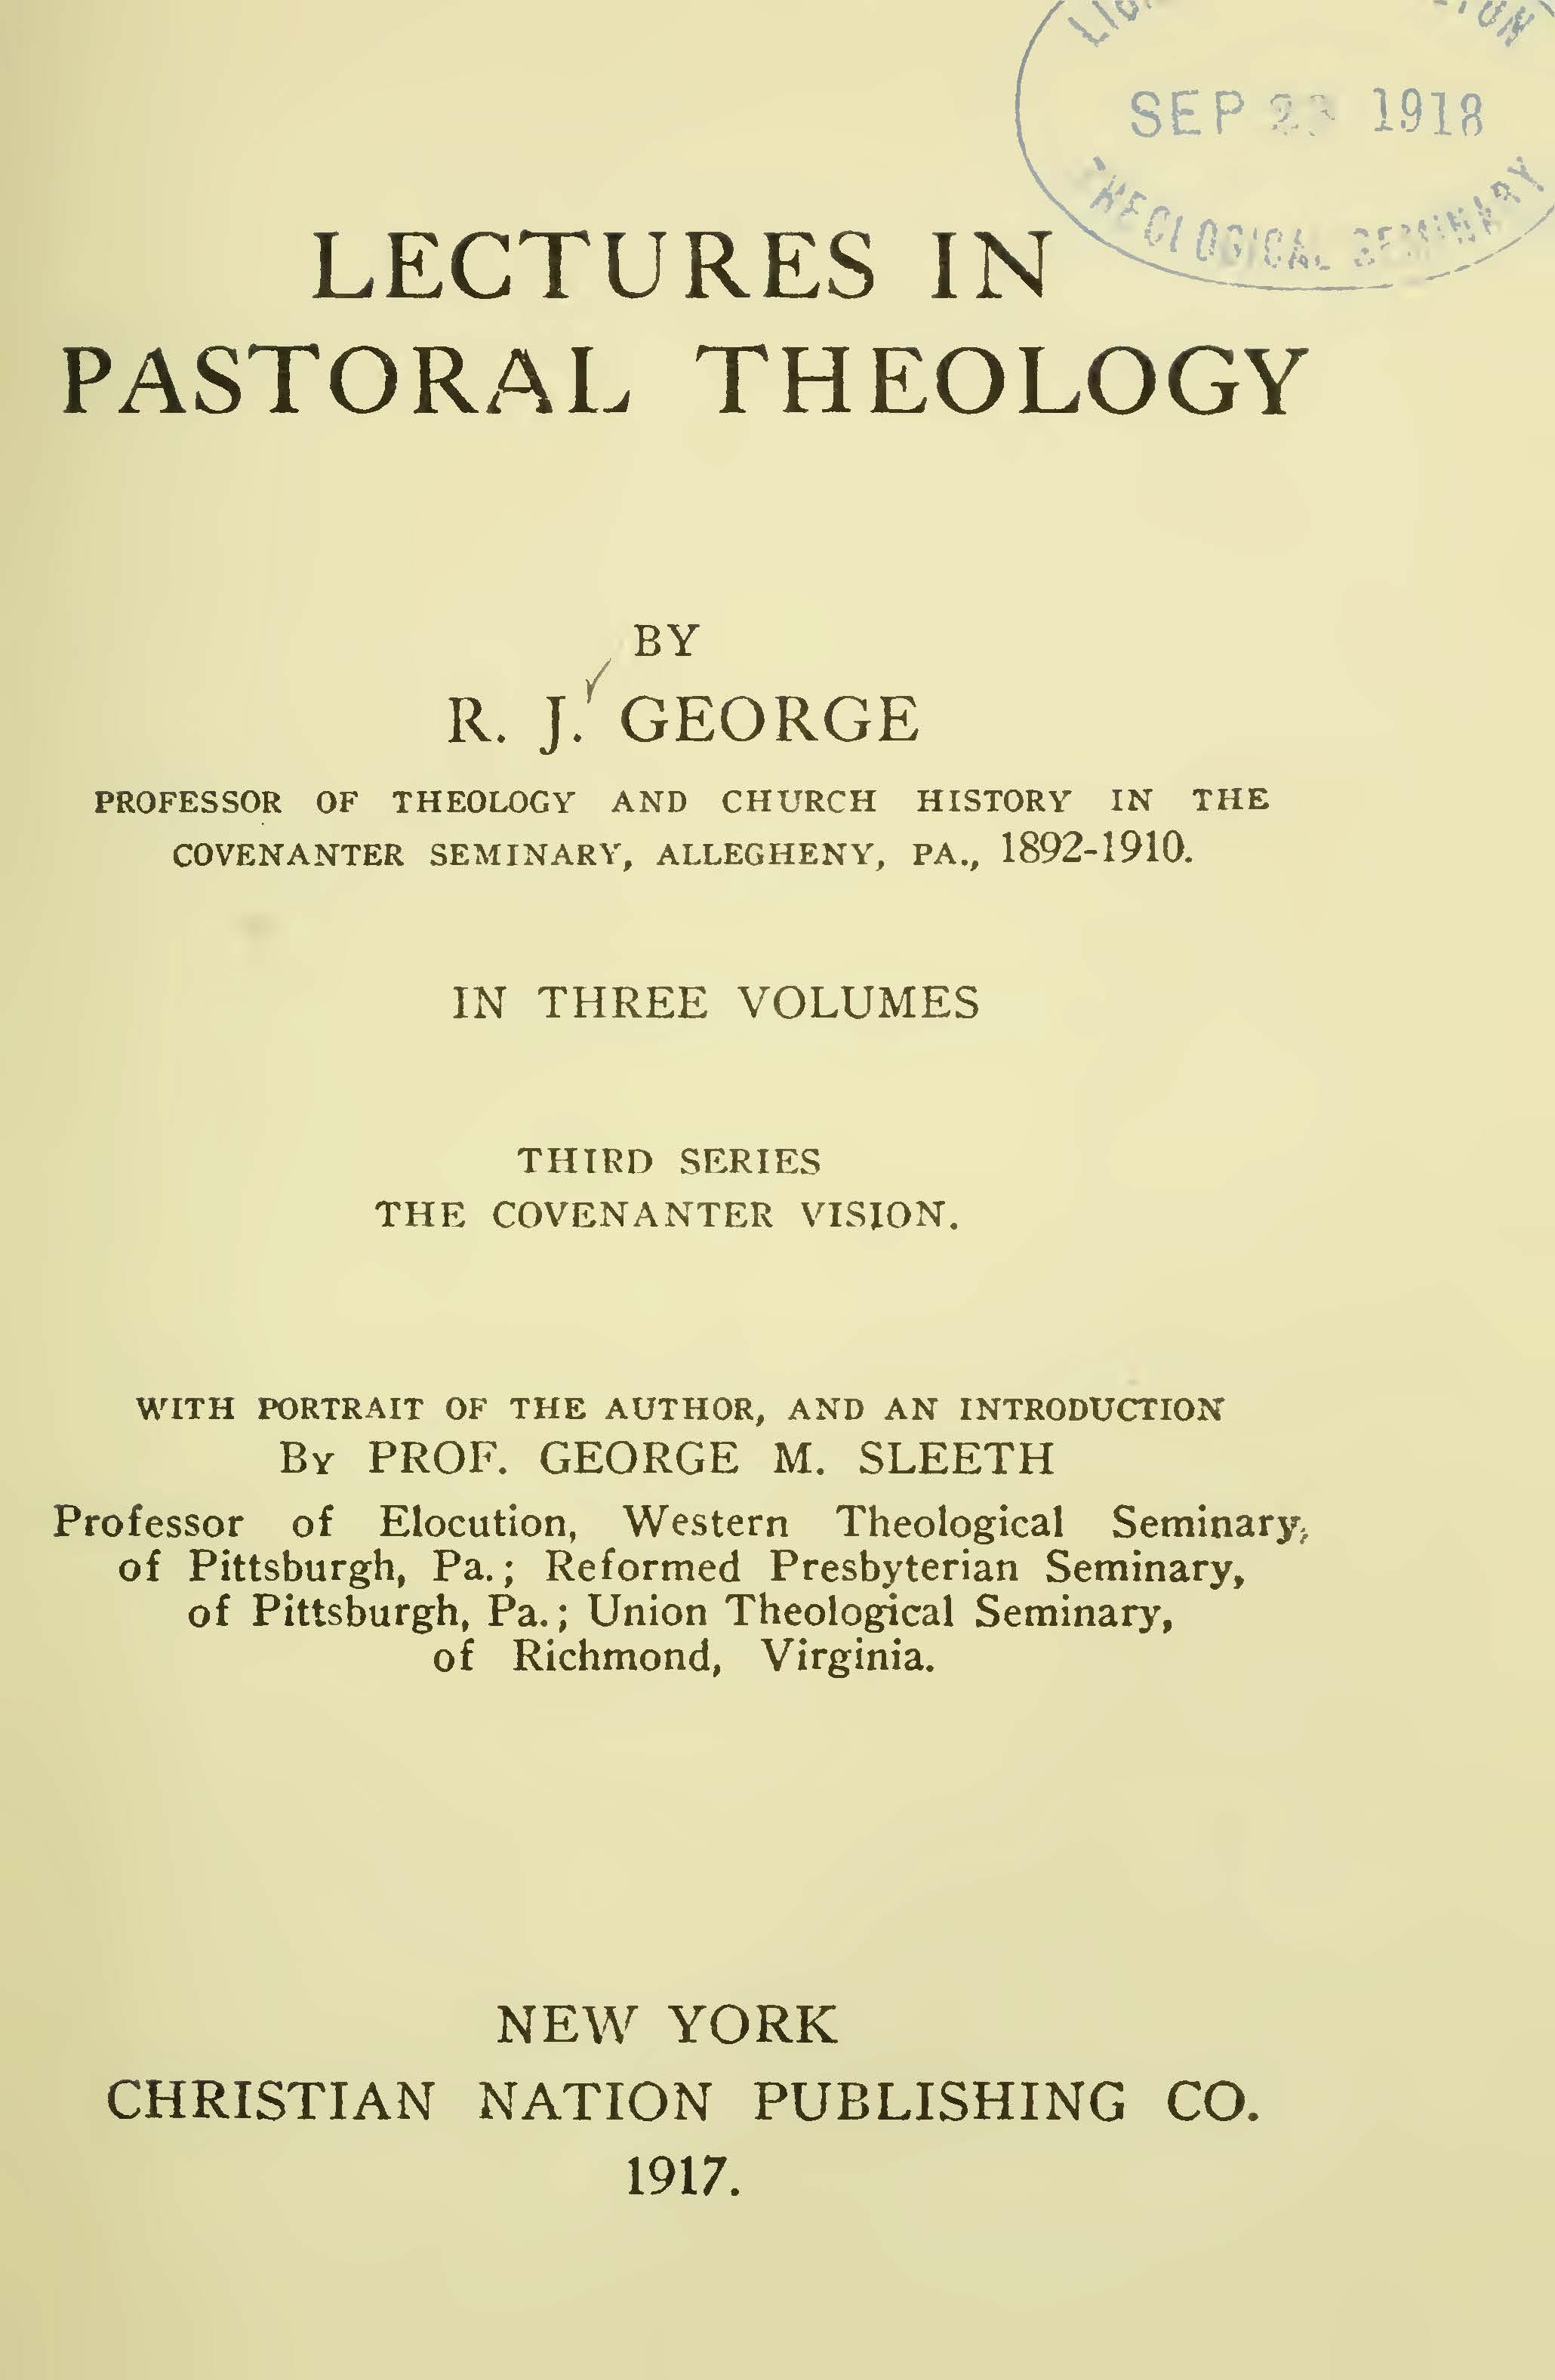 George, Robert James, Lectures in Pastoral Theology, Vol. 3 Title Page.jpg